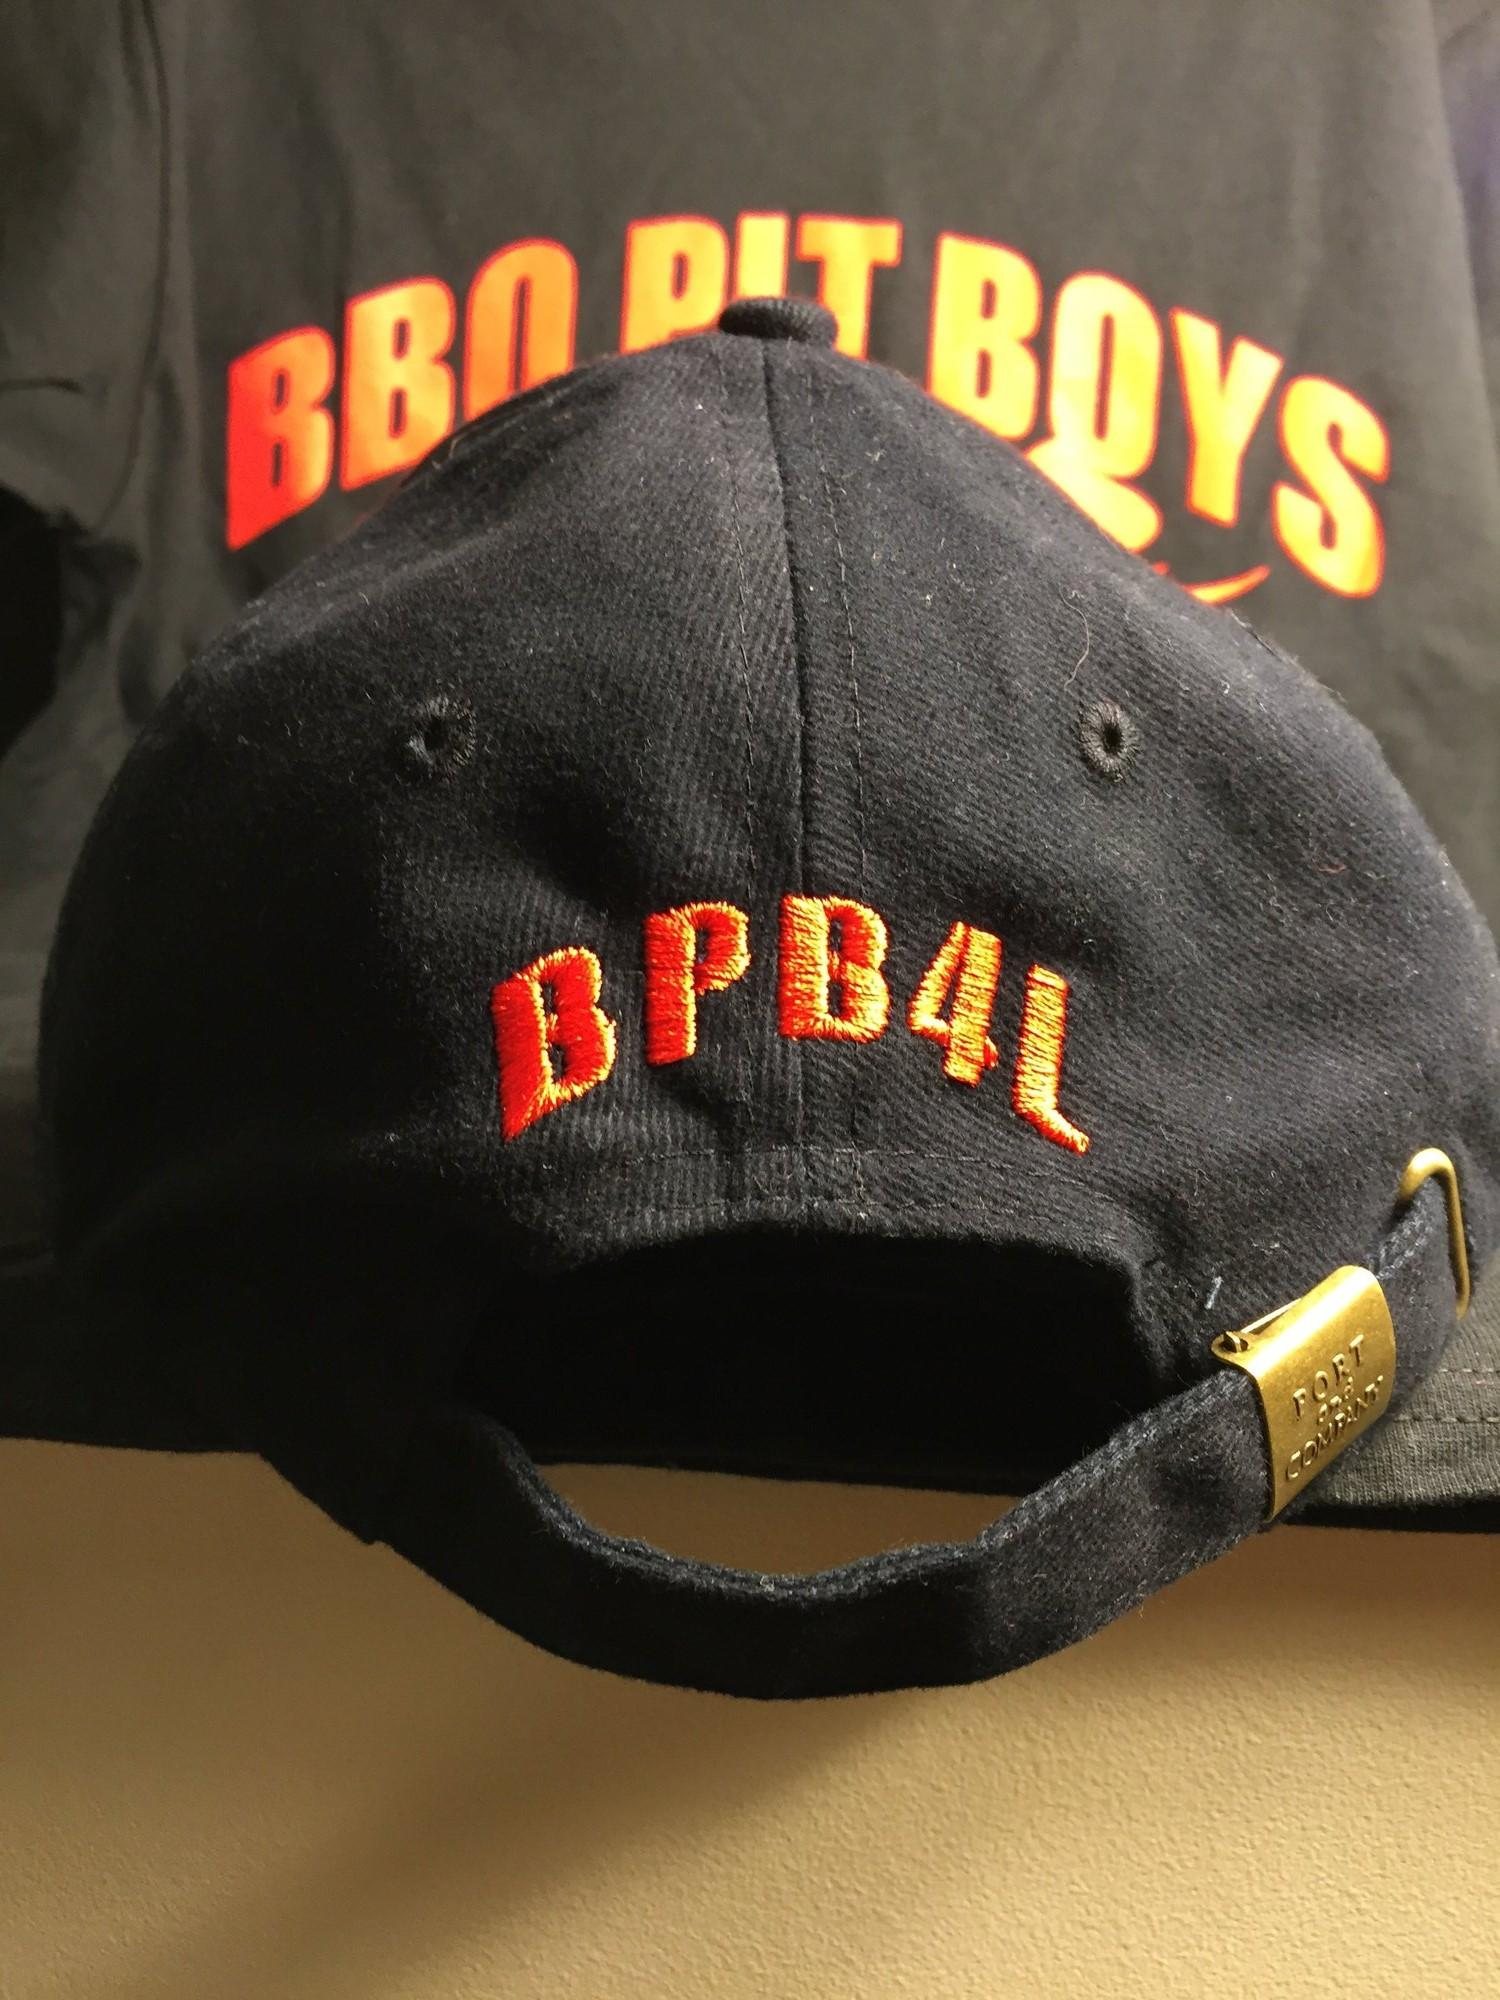 BBQ Pit Boys BPB4L Embroidered Hat